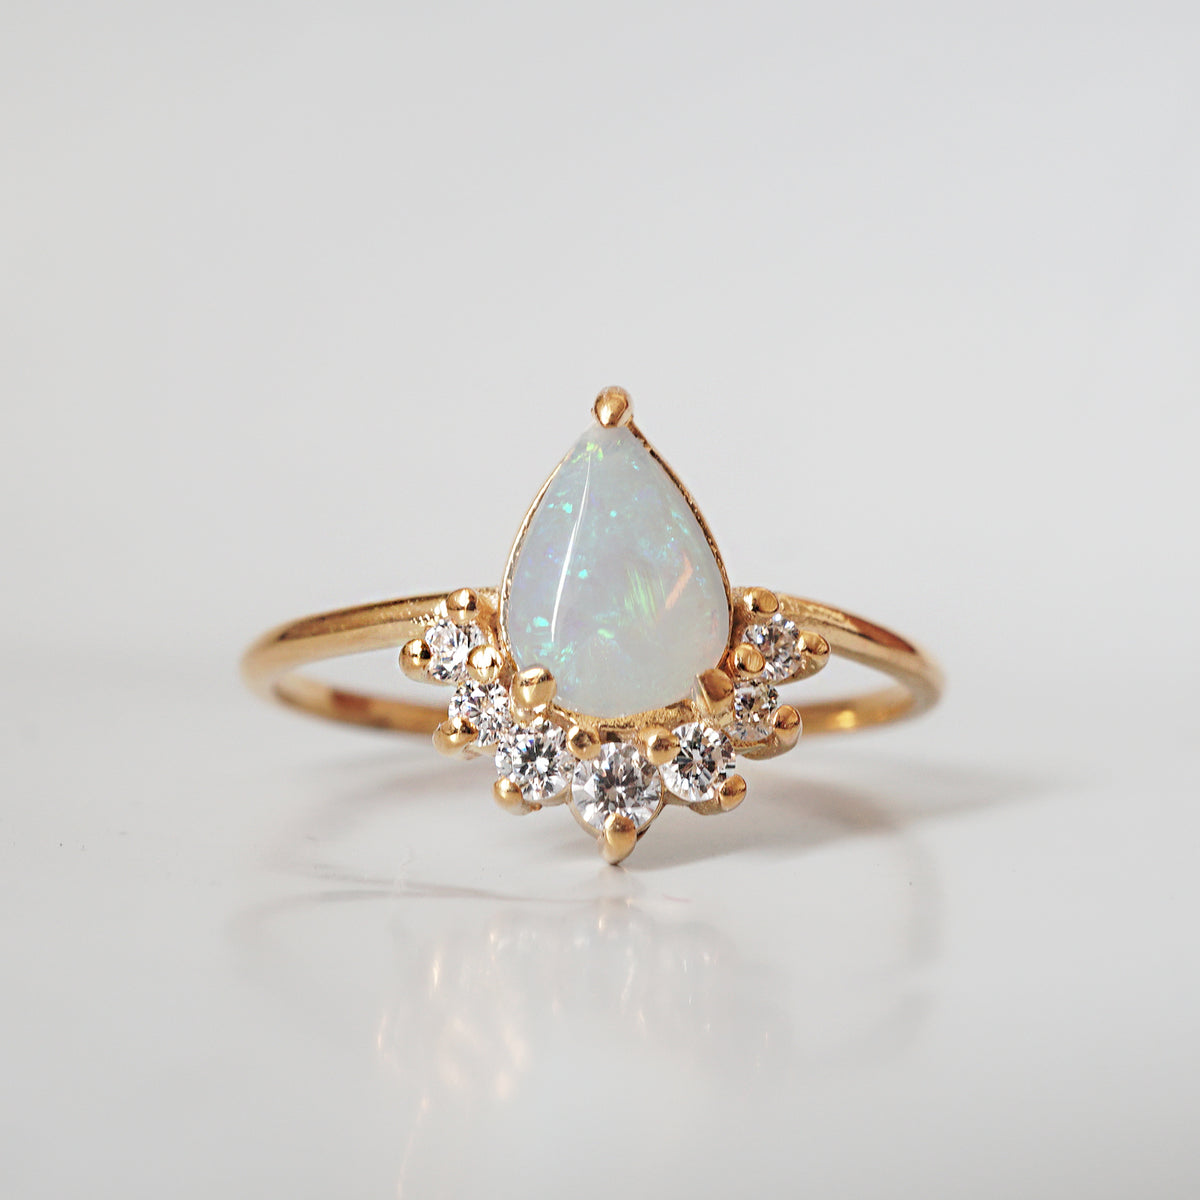 Australian Opal Bubble Ring